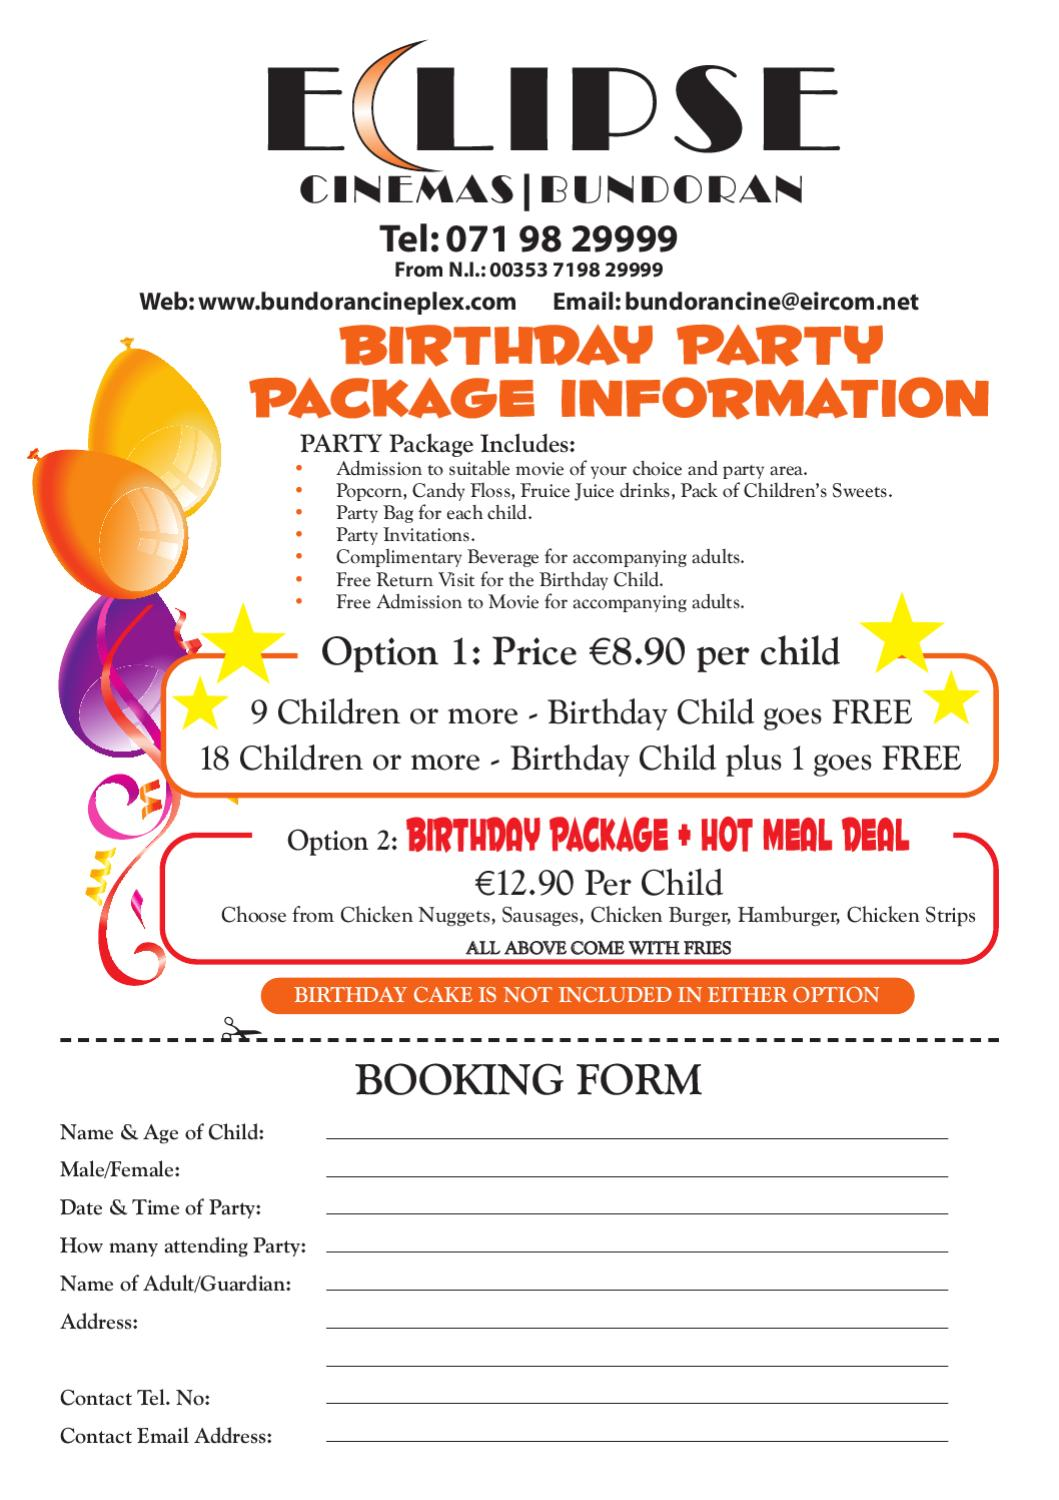 Birthday Party Package by Eclipse Cinemas - issuu